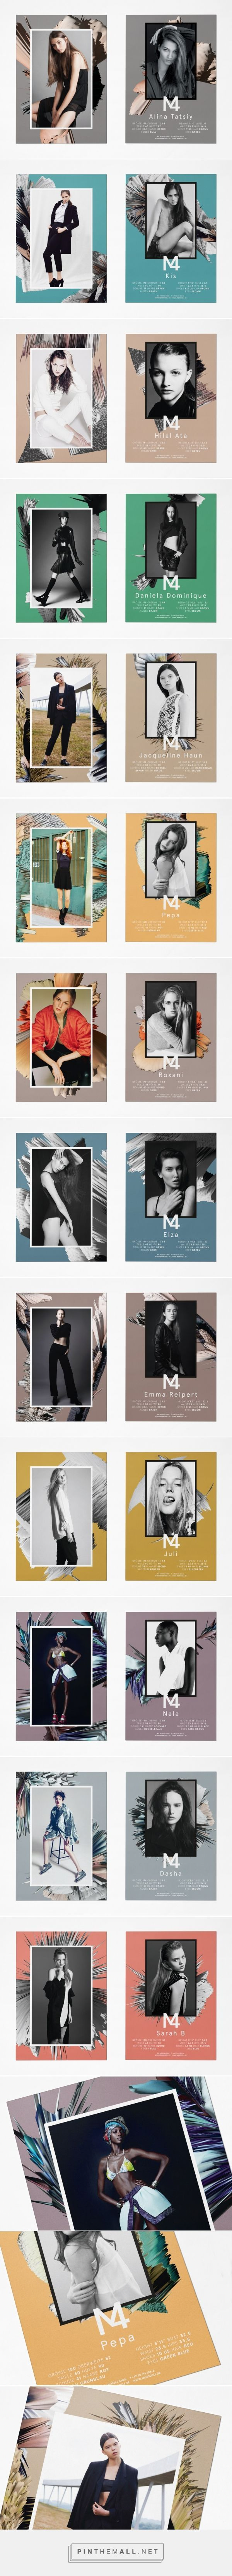 M4 Models SedCards Winter 2015 | Eps51 graphic design studio